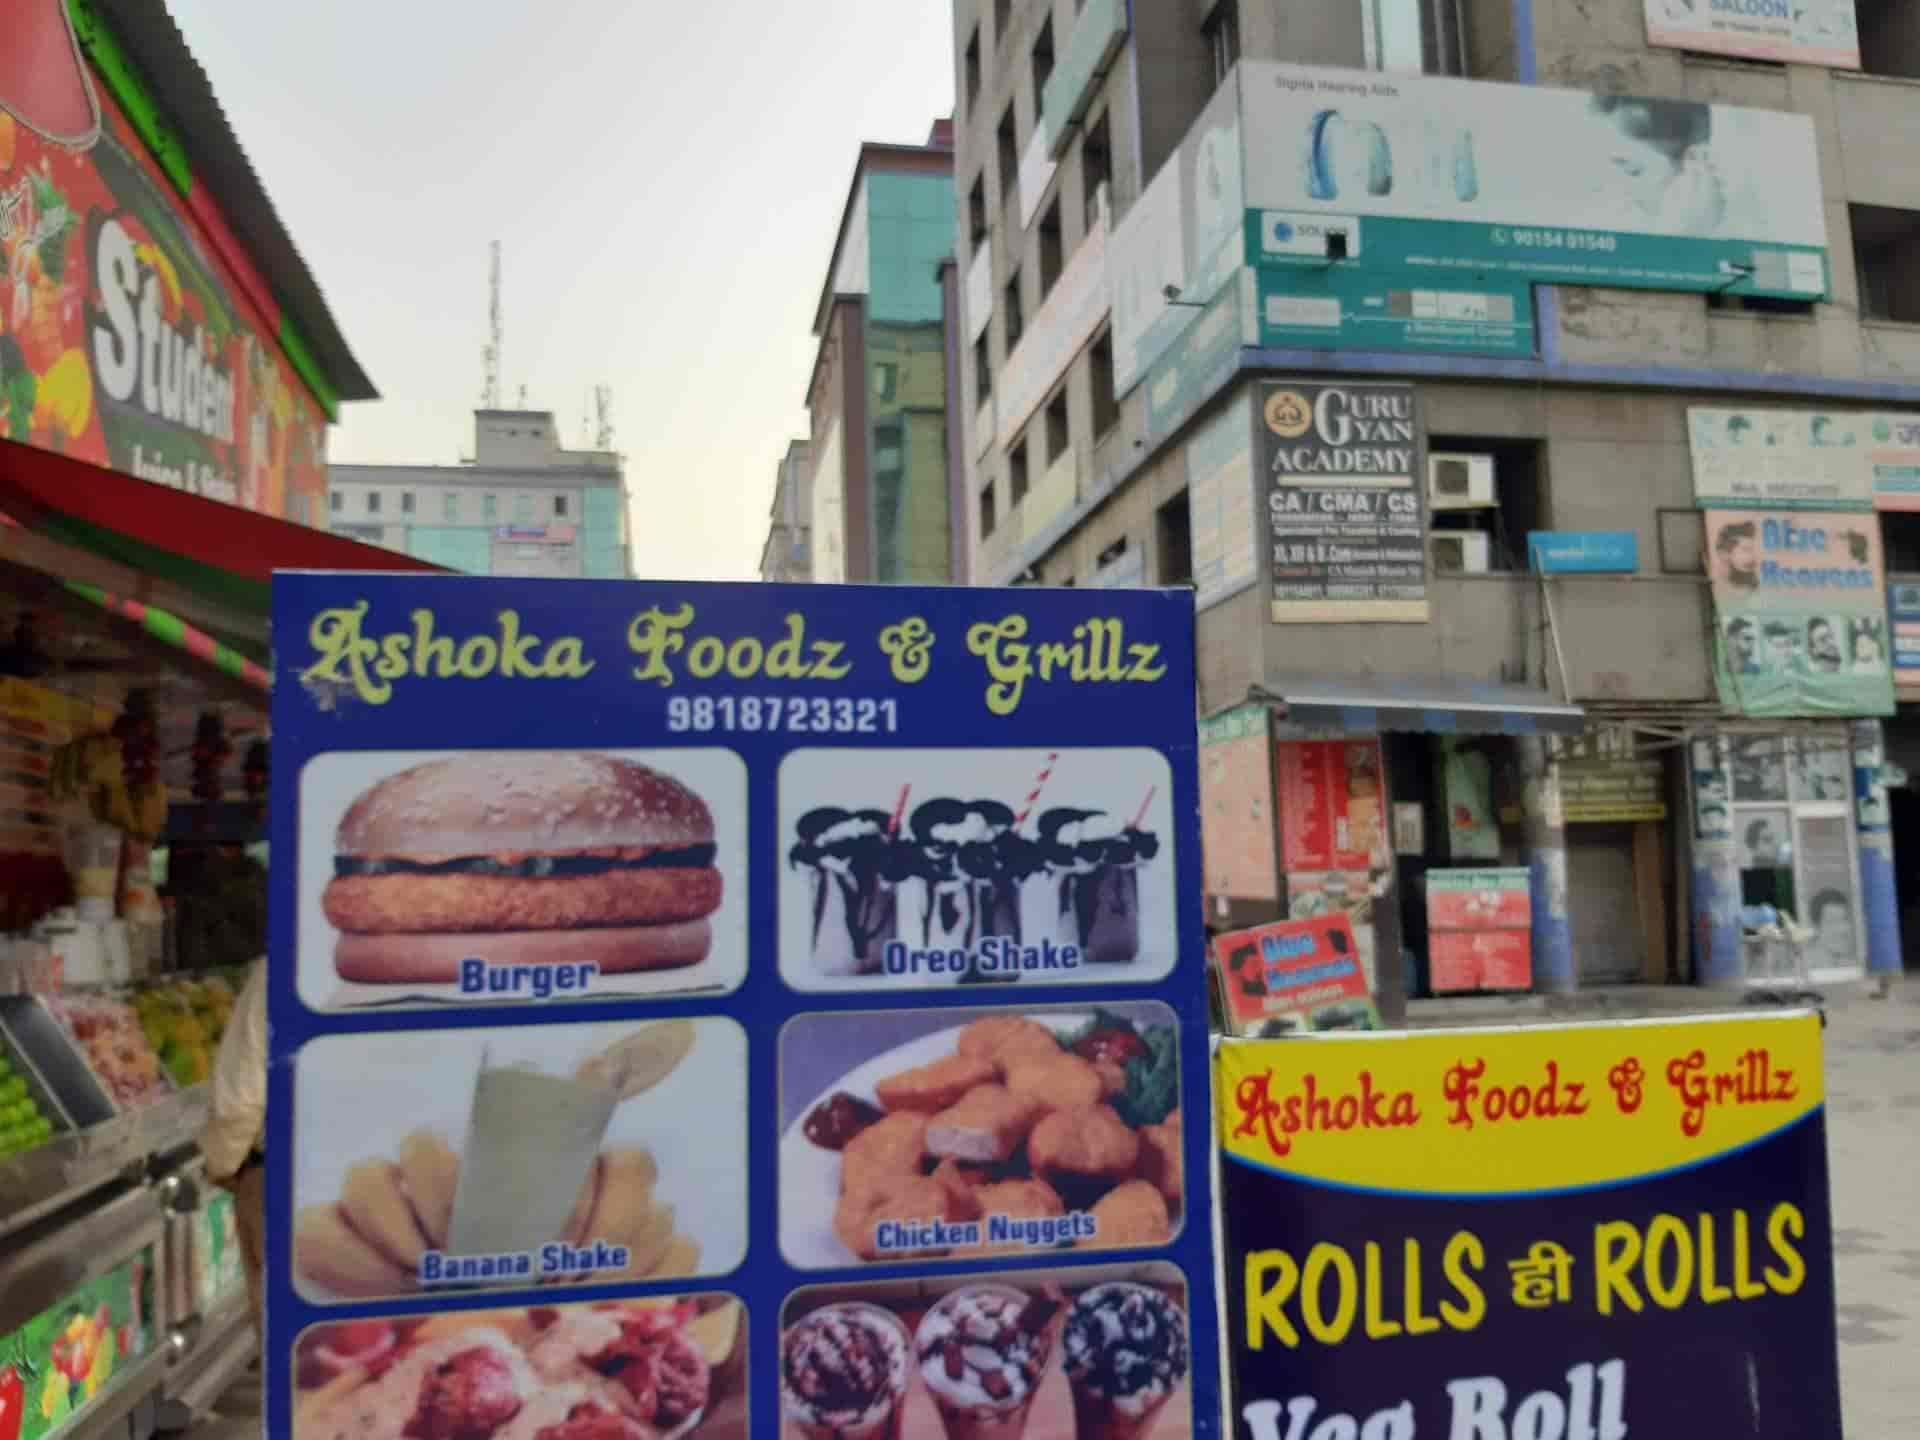 Ashoka Foodz & Grillz, Alpha 1 Greater Noida, Delhi - Take Away